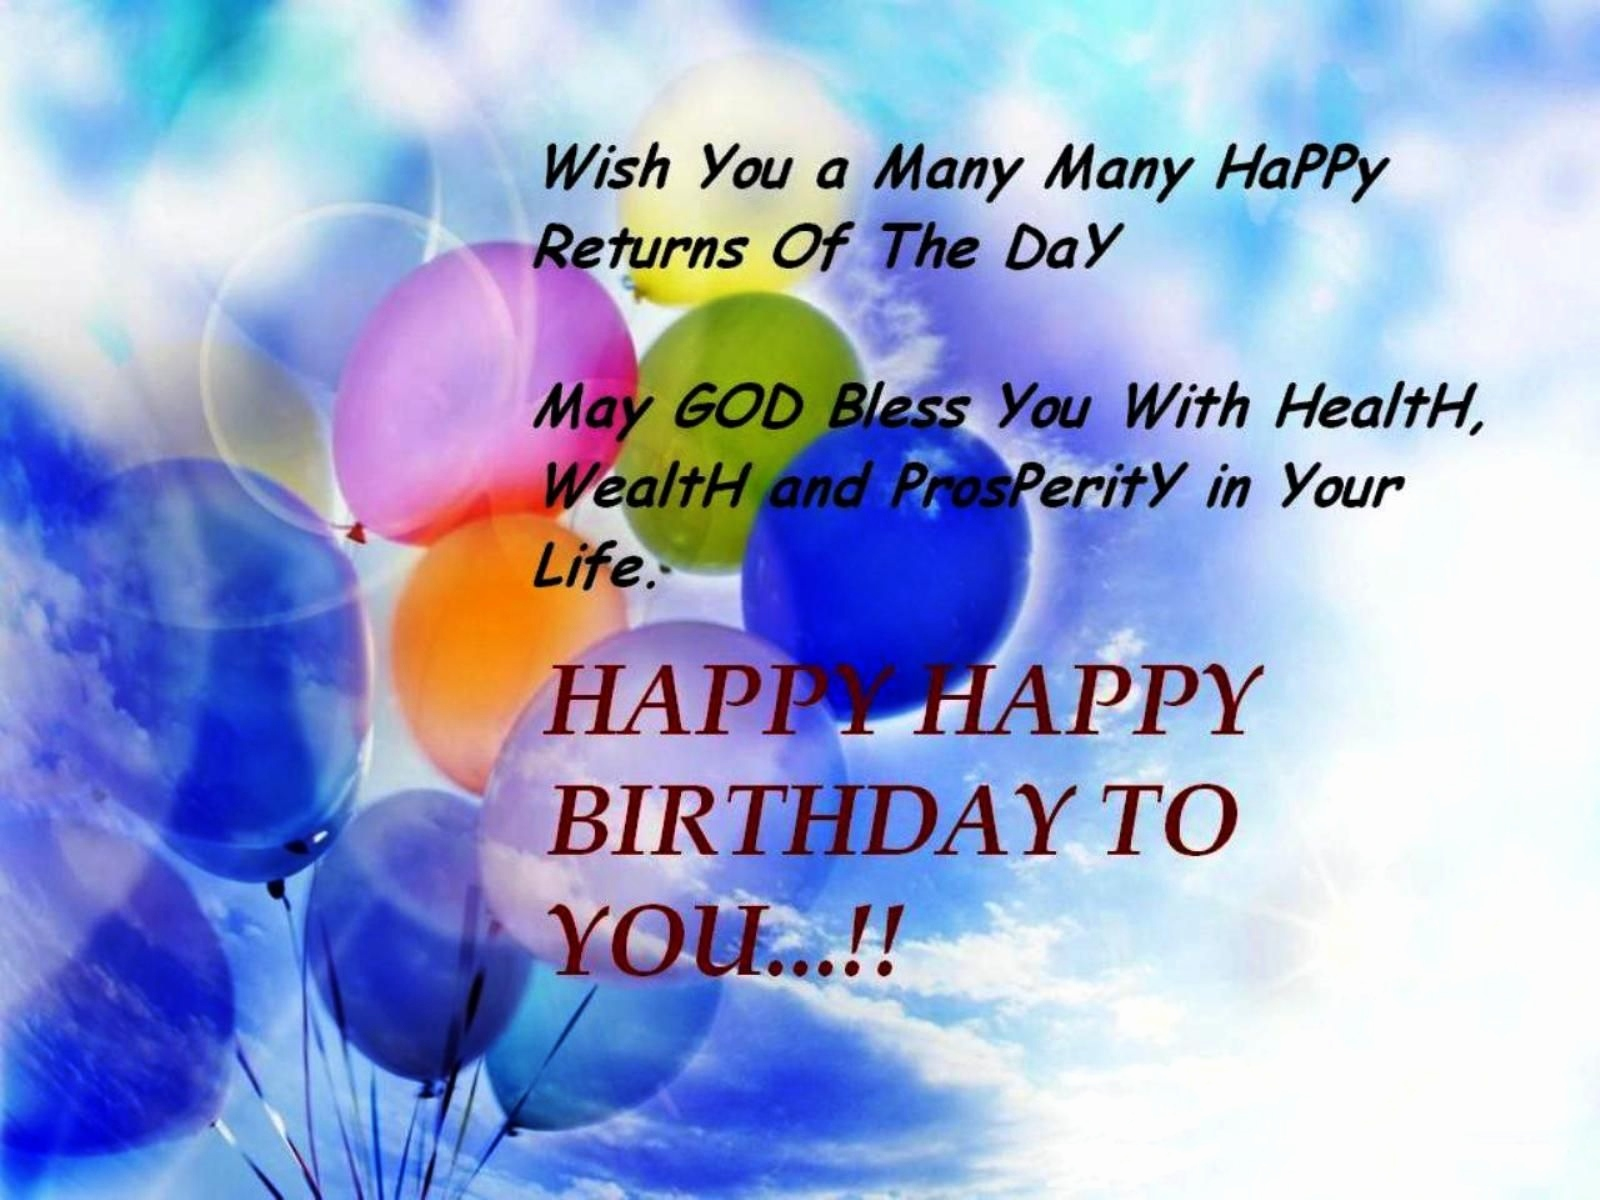 happy birthday wishes quotes ; advance-birthday-wishes-cards-lovely-happy-birthday-wishes-quotes-birthday-wishes-greetings-of-advance-birthday-wishes-cards